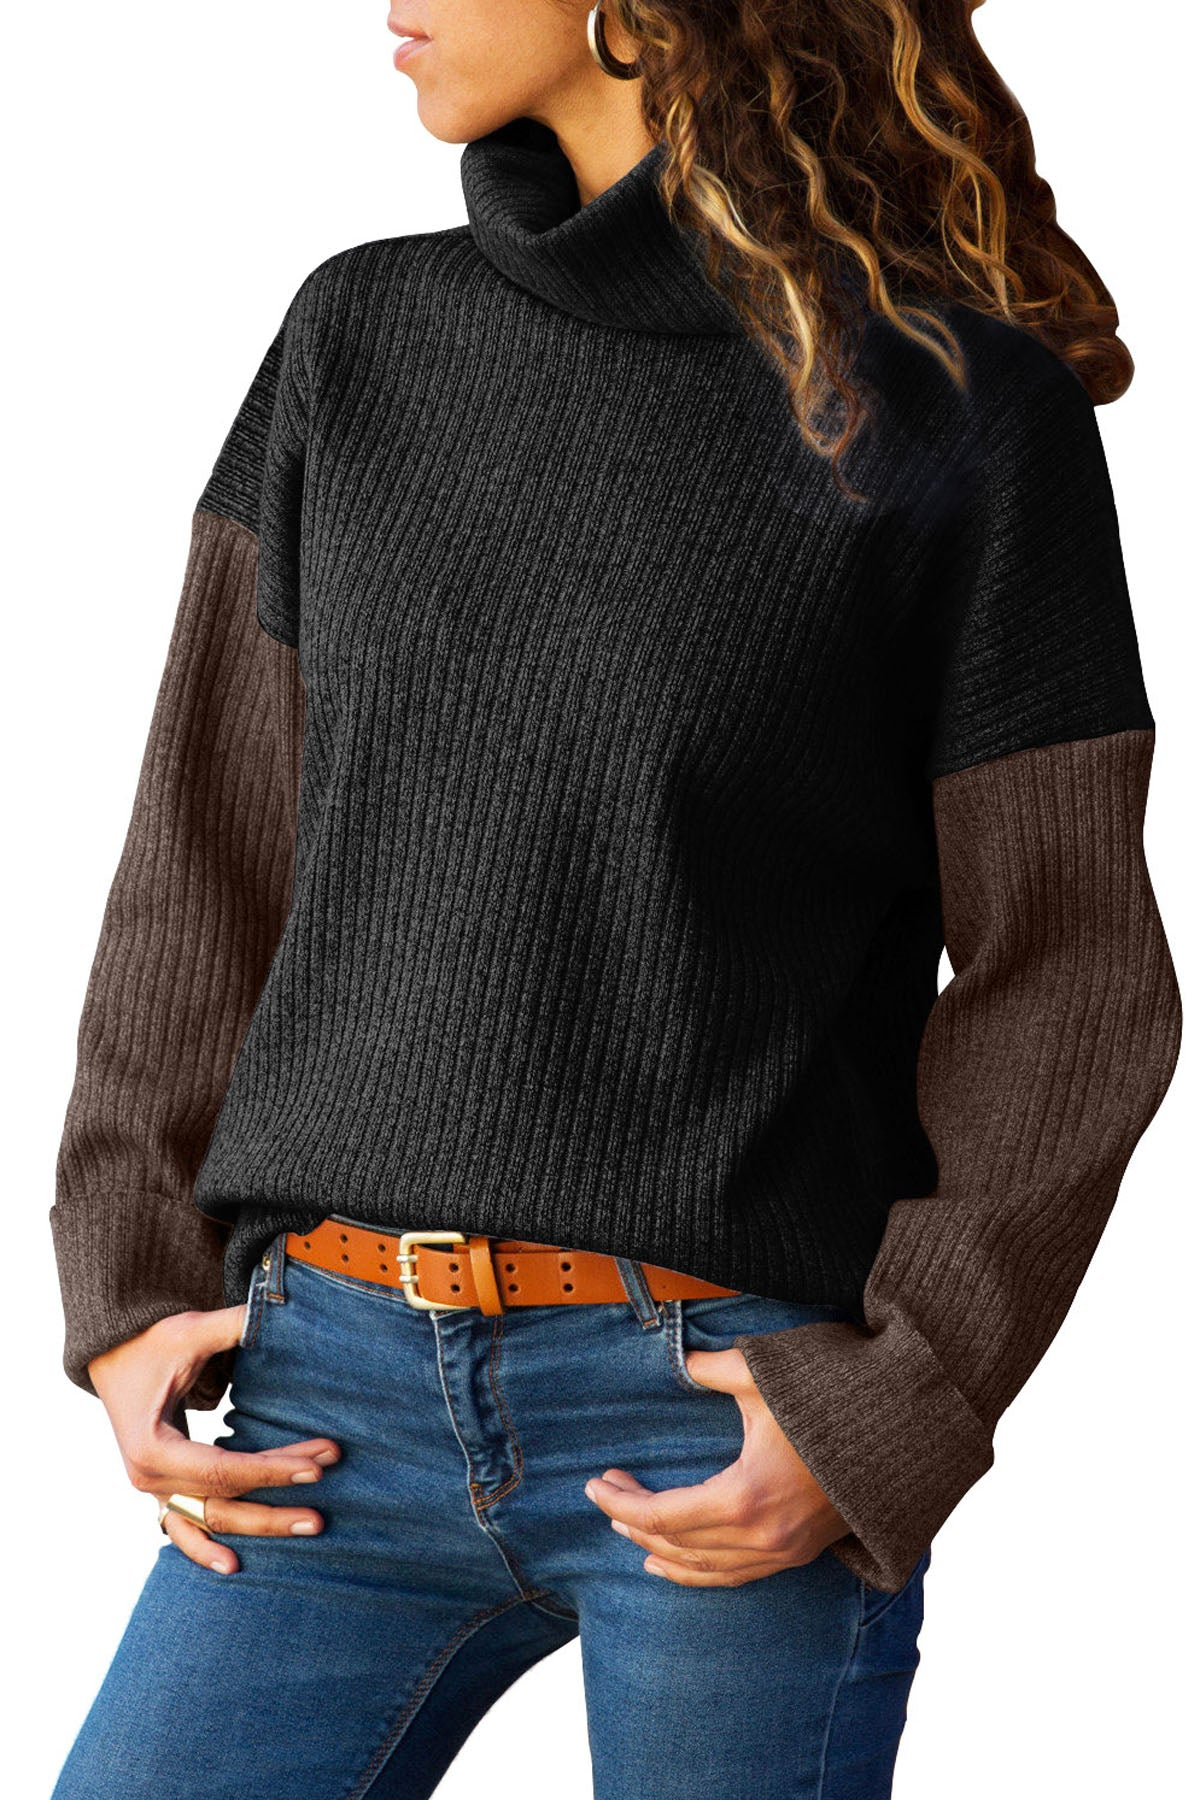 Black Brown Color Patchwork Ribbed High Neck Sweater Sweaters & Cardigans Discount Designer Fashion Clothes Shoes Bags Women Men Kids Children Black Owned Business